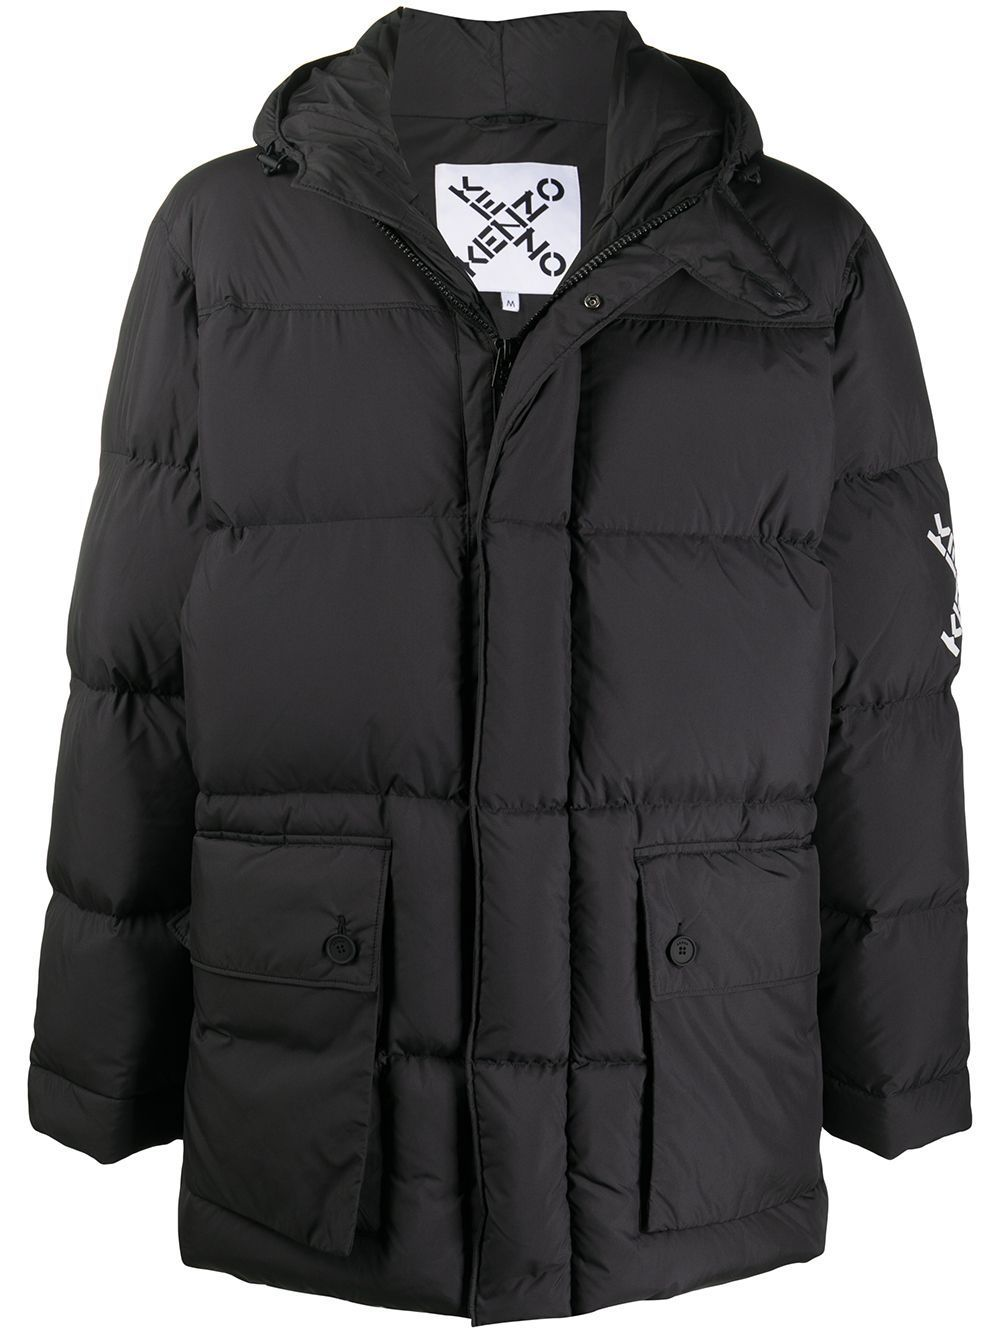 KENZO Logo Cross Parka Padded Coat Black - Maison De Fashion